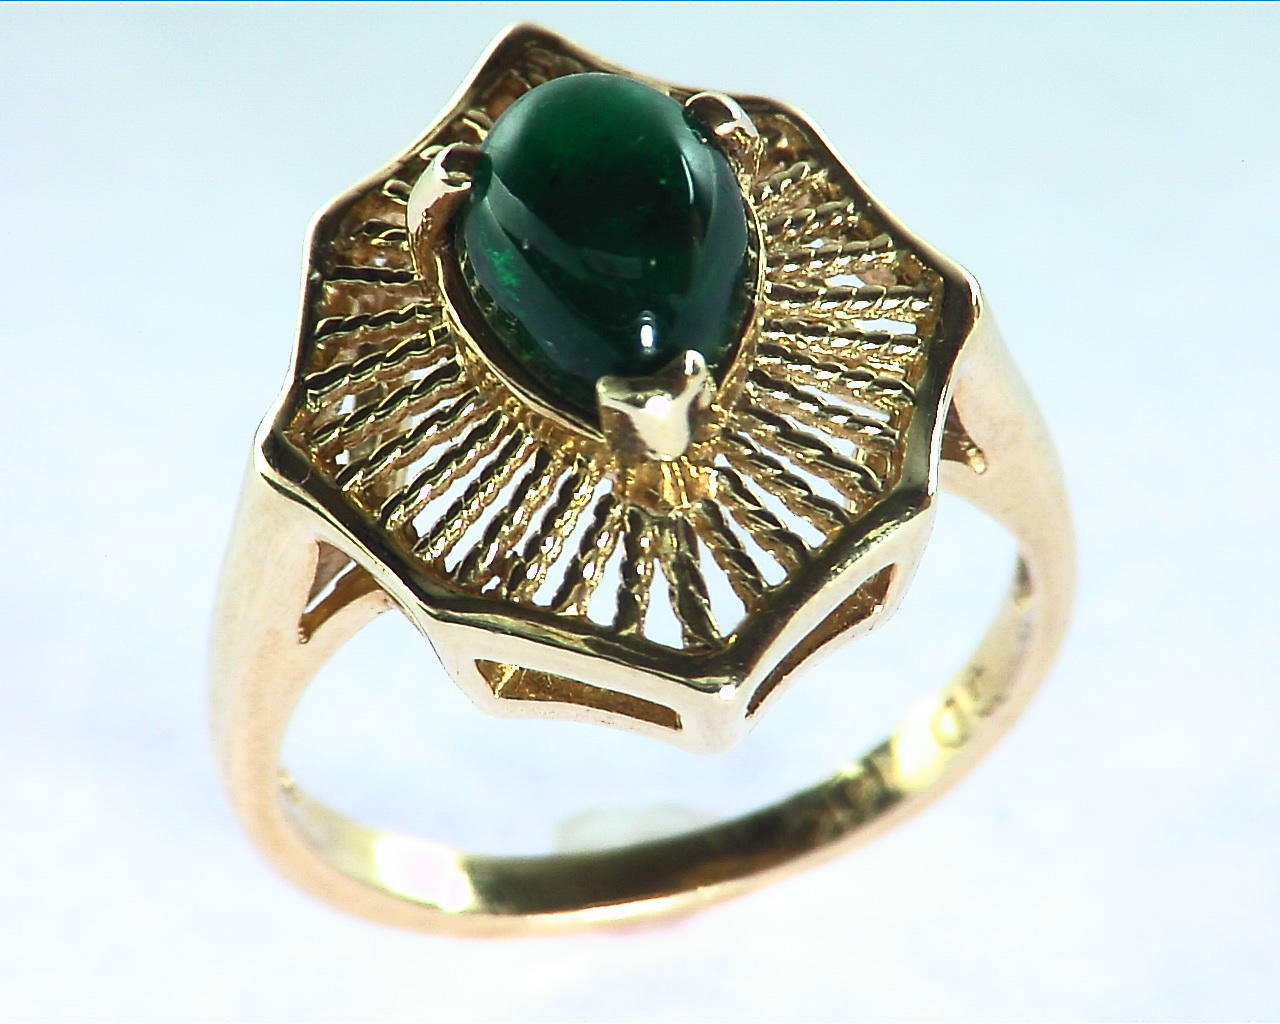 Emerald Engagement Ring in 14 kt Yellow Gold in a Beautiful Design RFK126